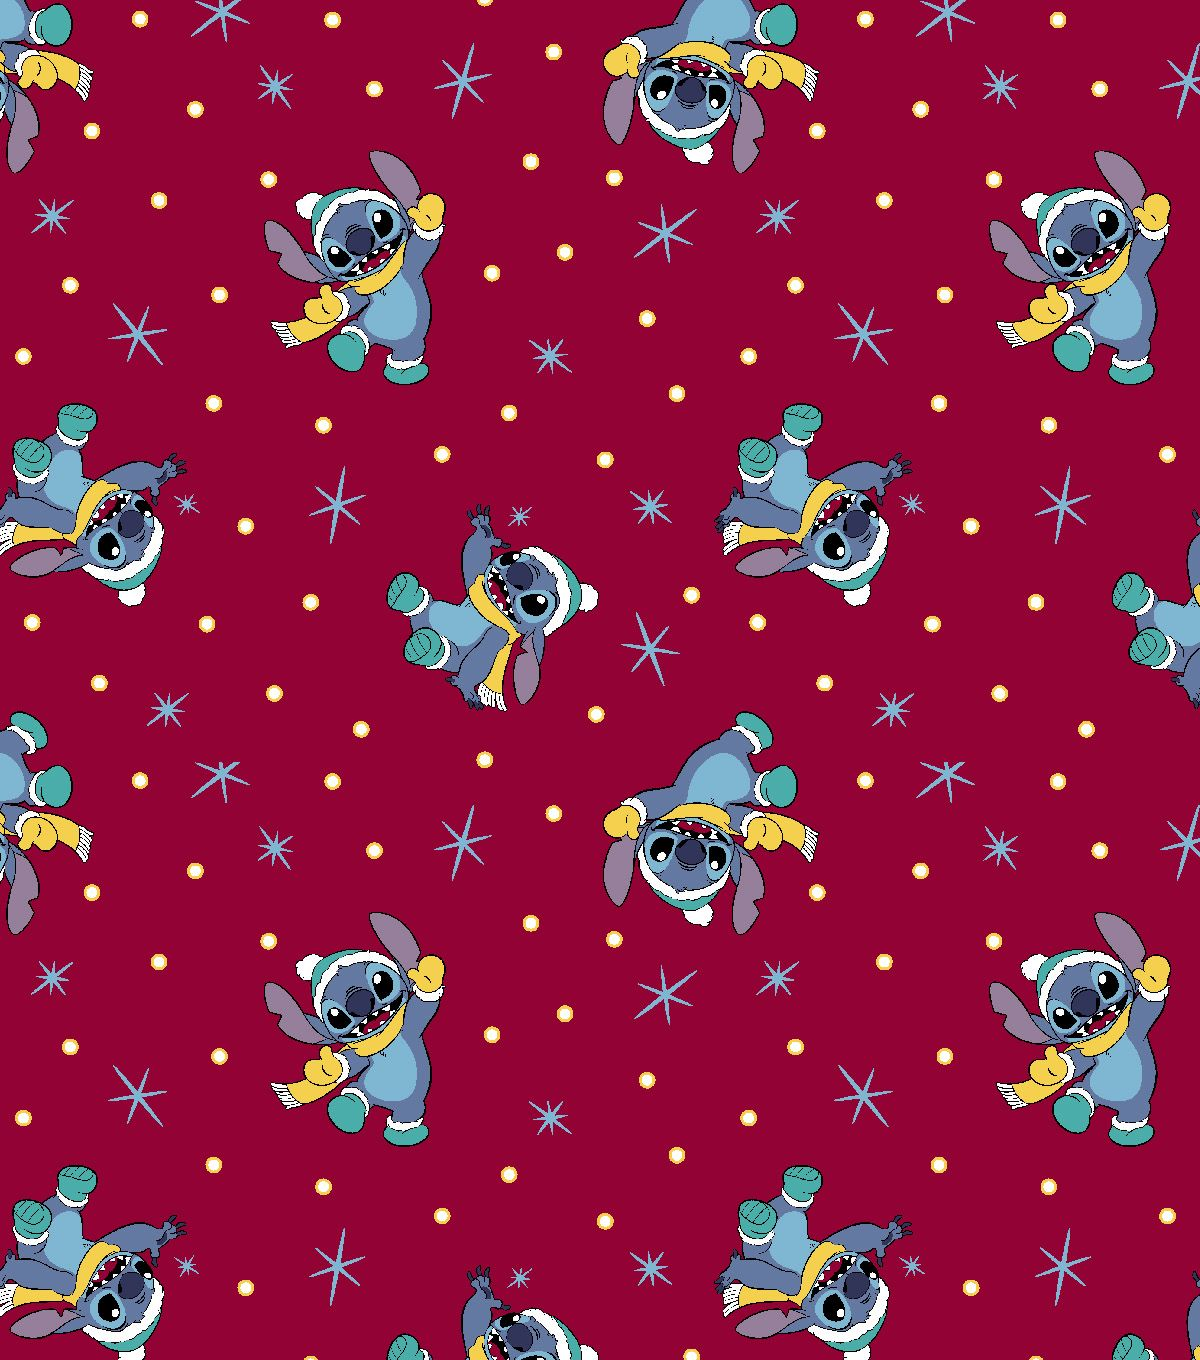 Disney Lilo Stitch Christmas Knit Fabric Red Cute Christmas Wallpaper Christmas Wallpaper Lilo And Stitch